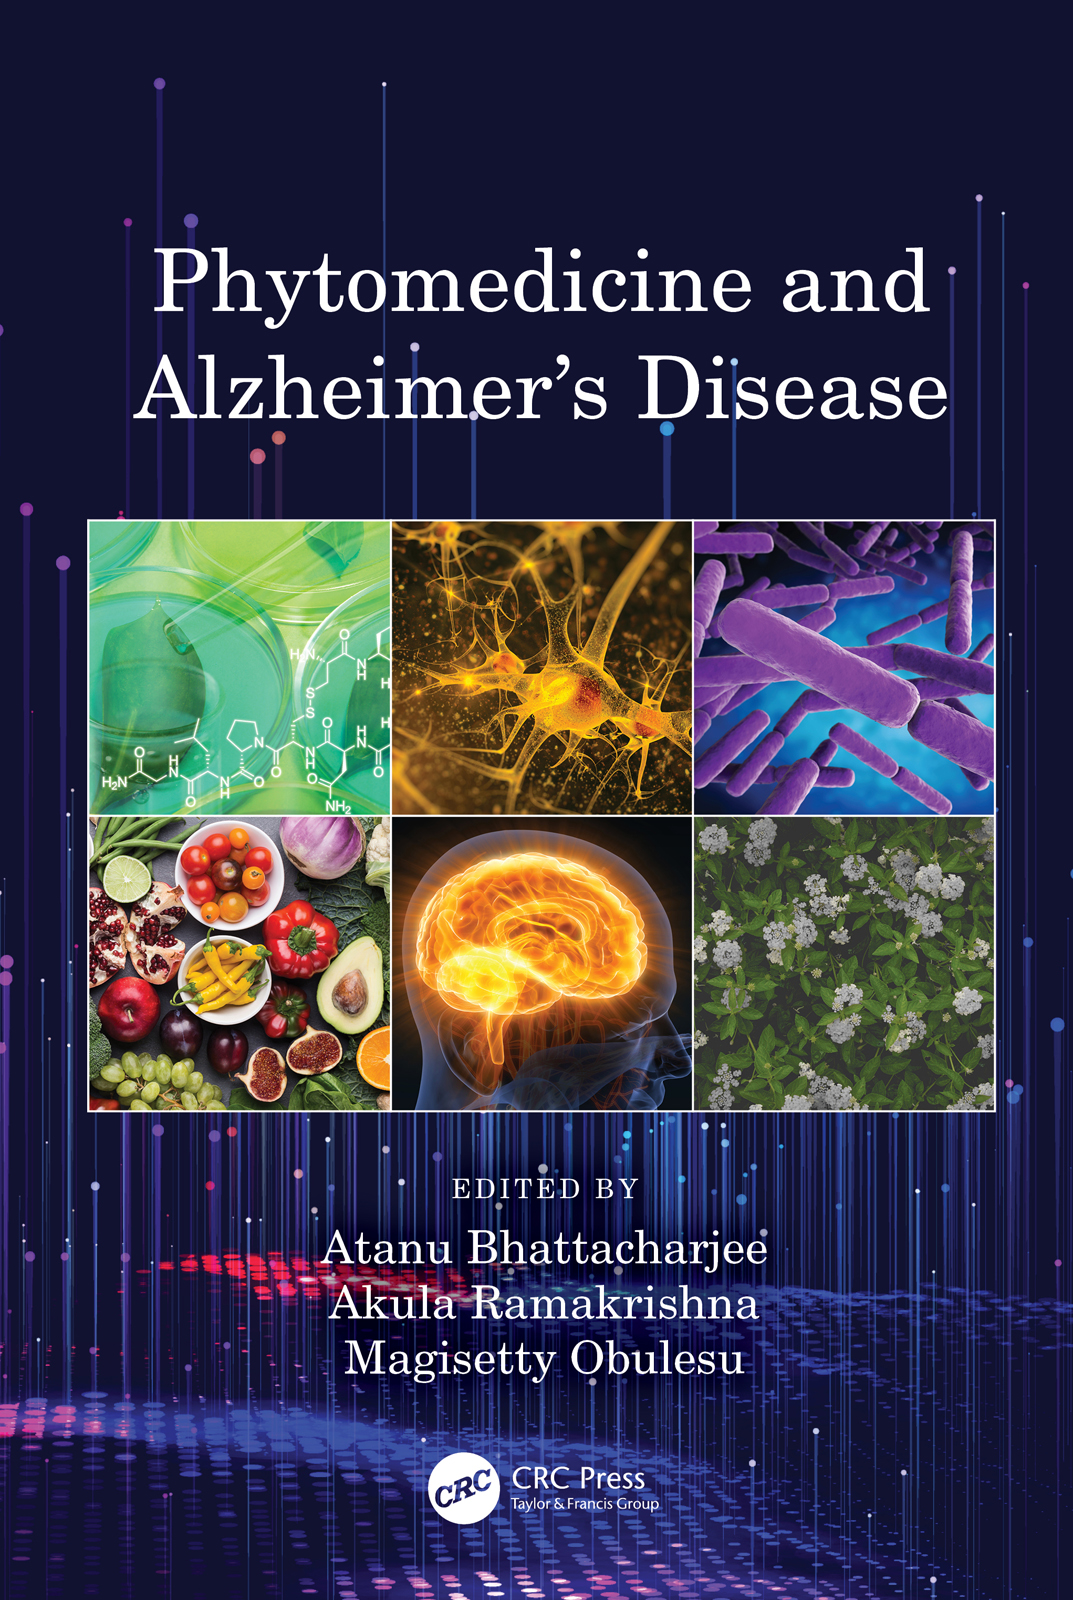 Phytomedicine and Alzheimer's Disease